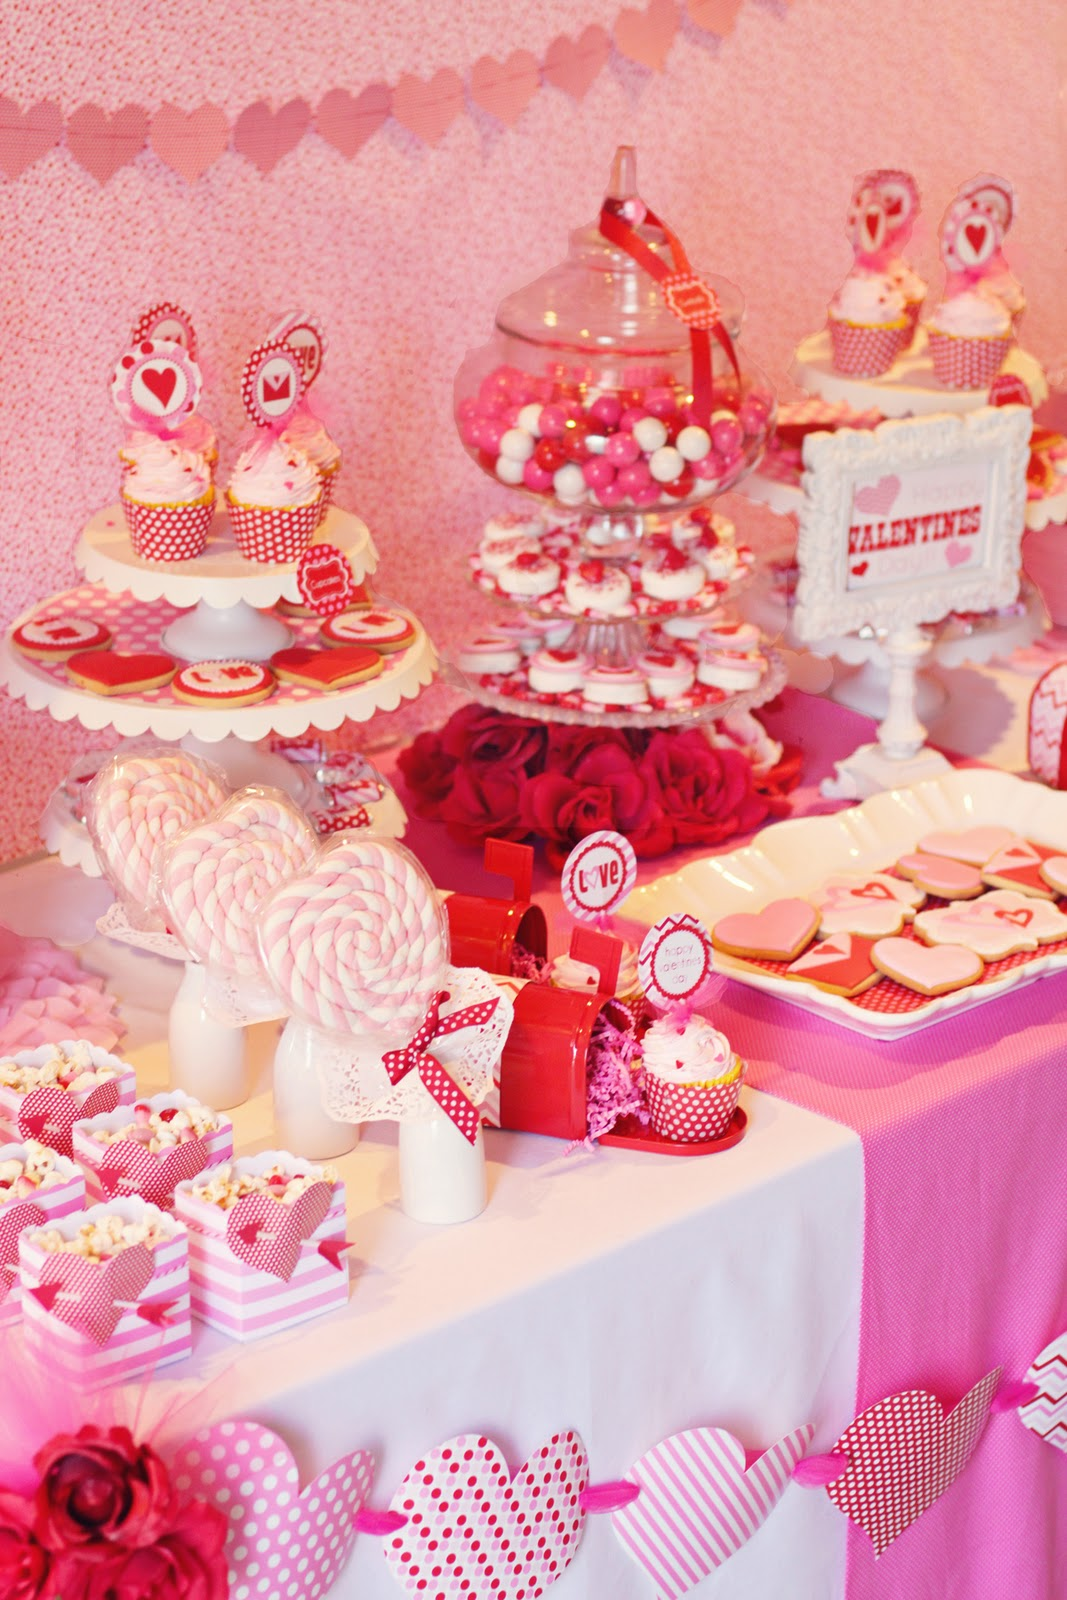 valentine 39 s party ideas lots of creative cute ideas for your next